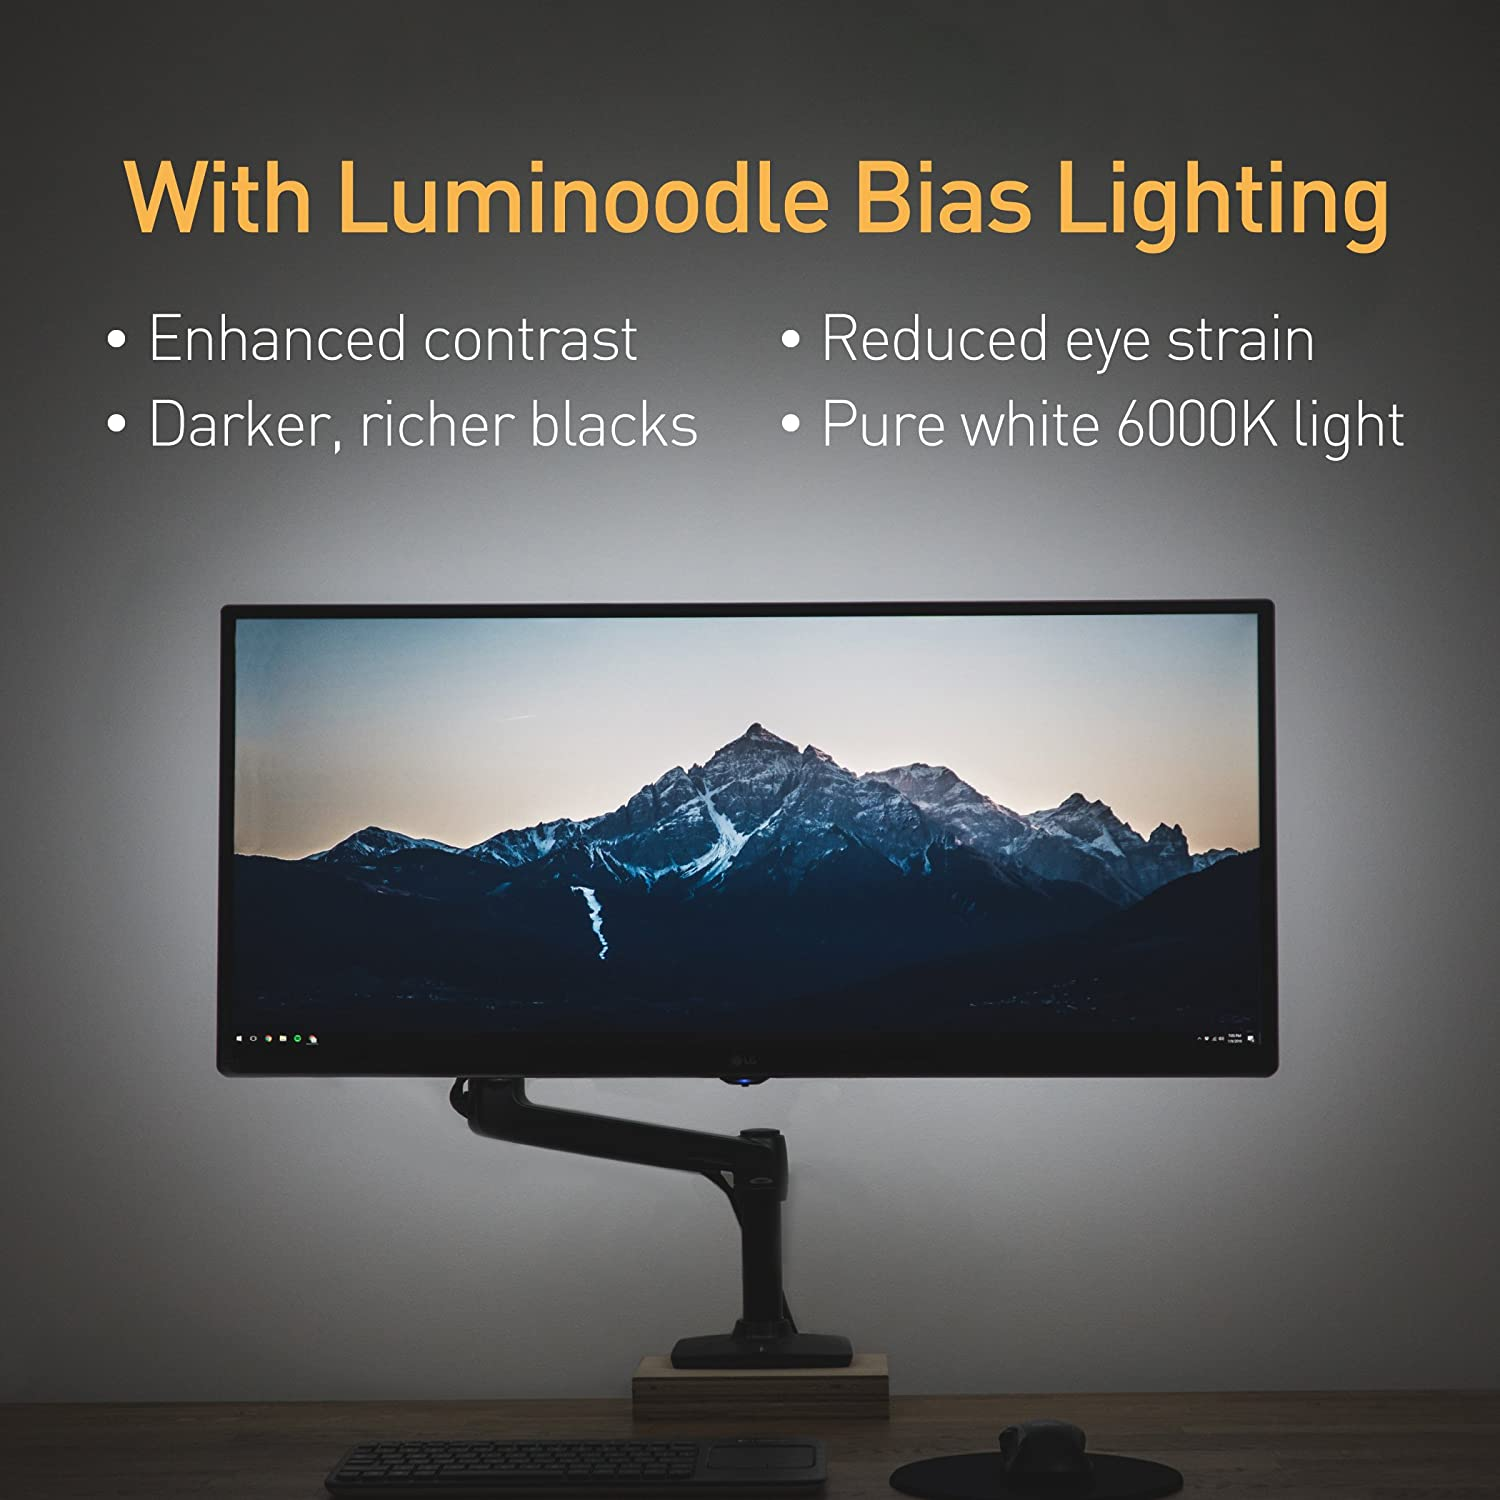 amazon com luminoodle computer monitor bias lighting usb tv